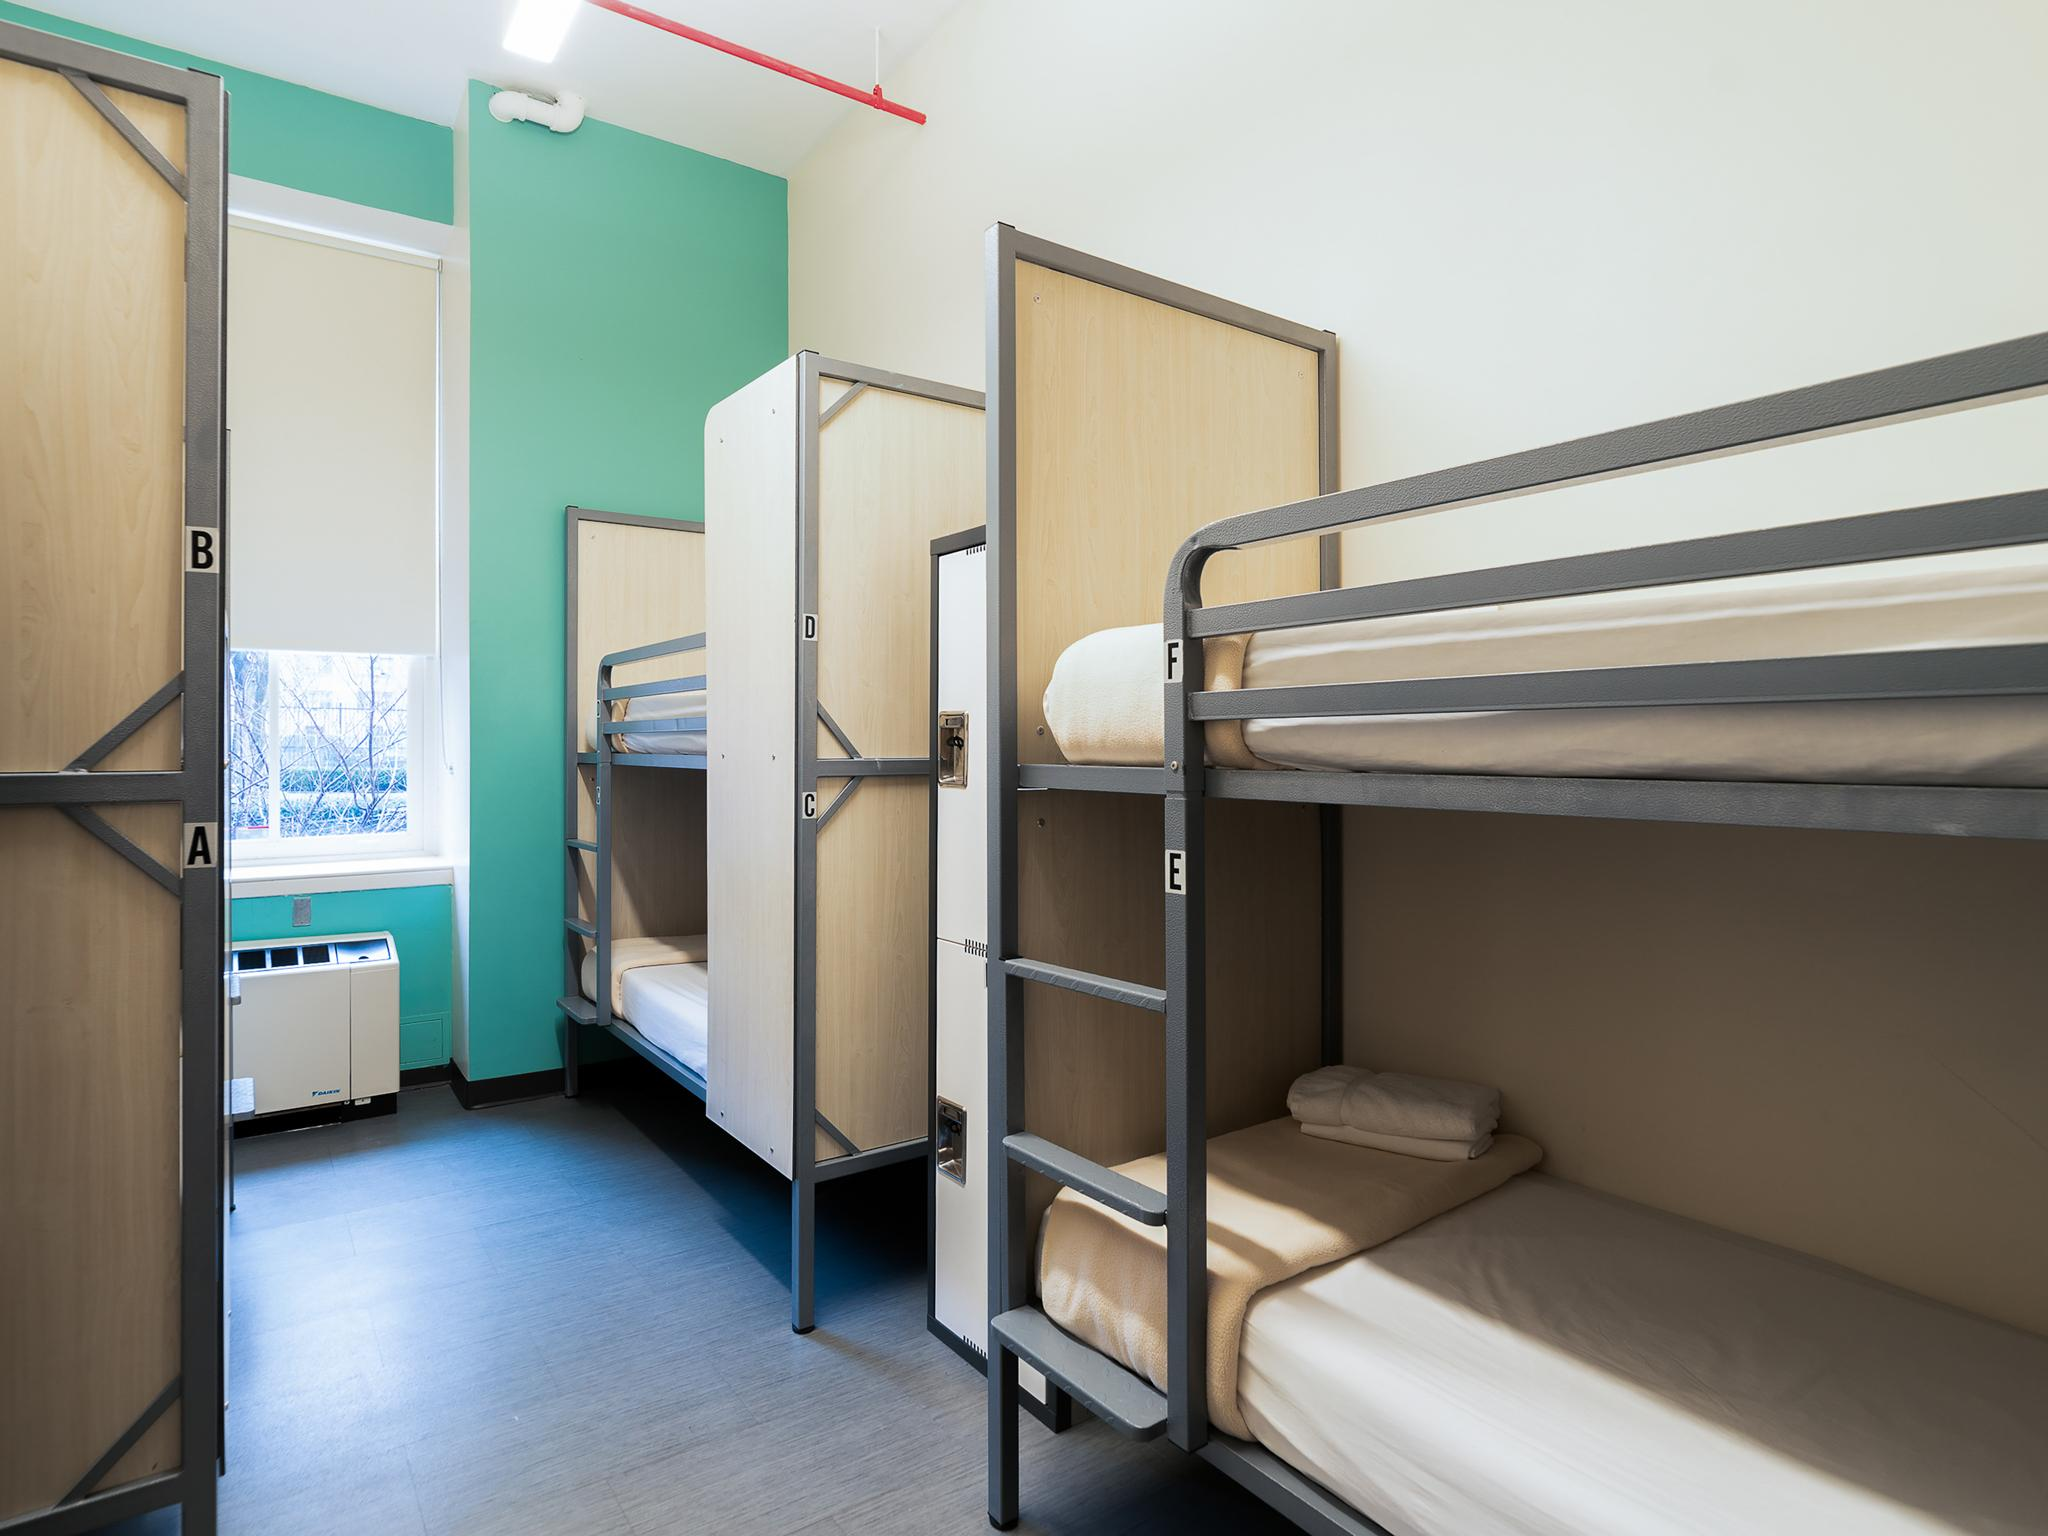 Mixed Dormitory - 6 Bunk Beds